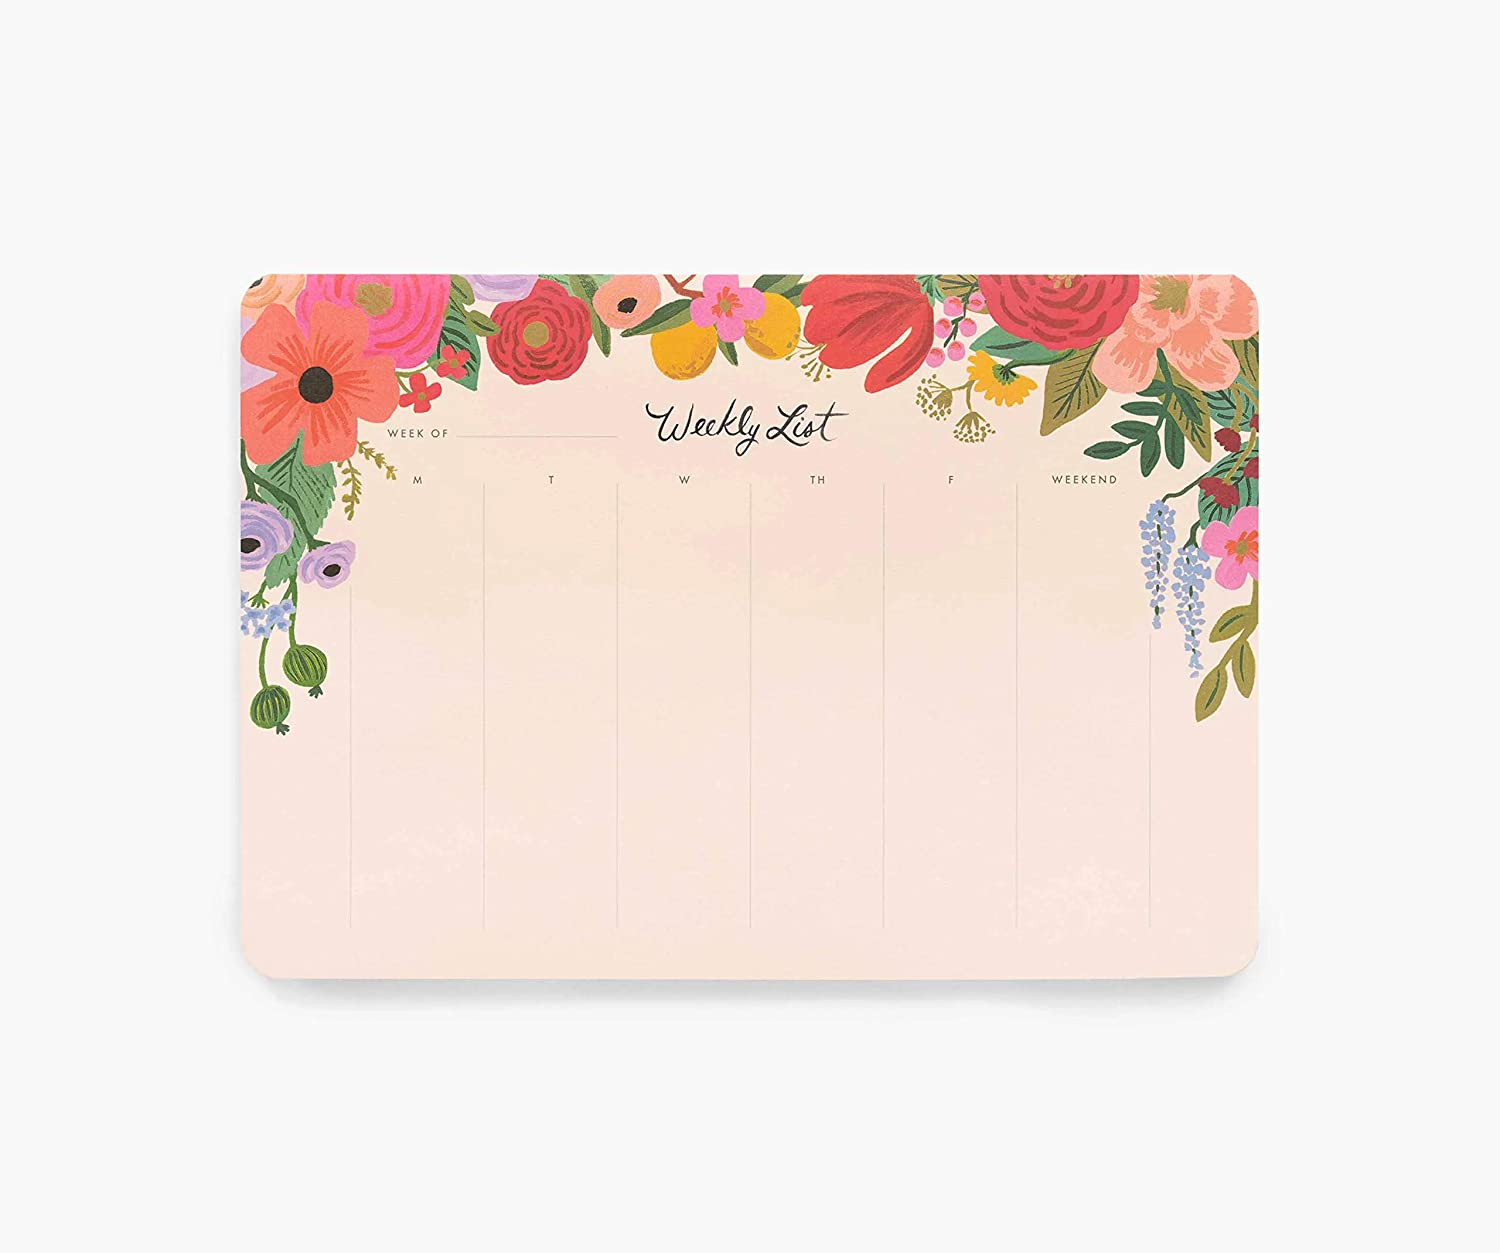 Rifle Paper Co. Garden Party Weekly Desk Pad, 52 Tear-Off Pages, Doubles as a Mouse Pad, Helps You Map Out Your Week for a Whole Year, Printed in Full Color